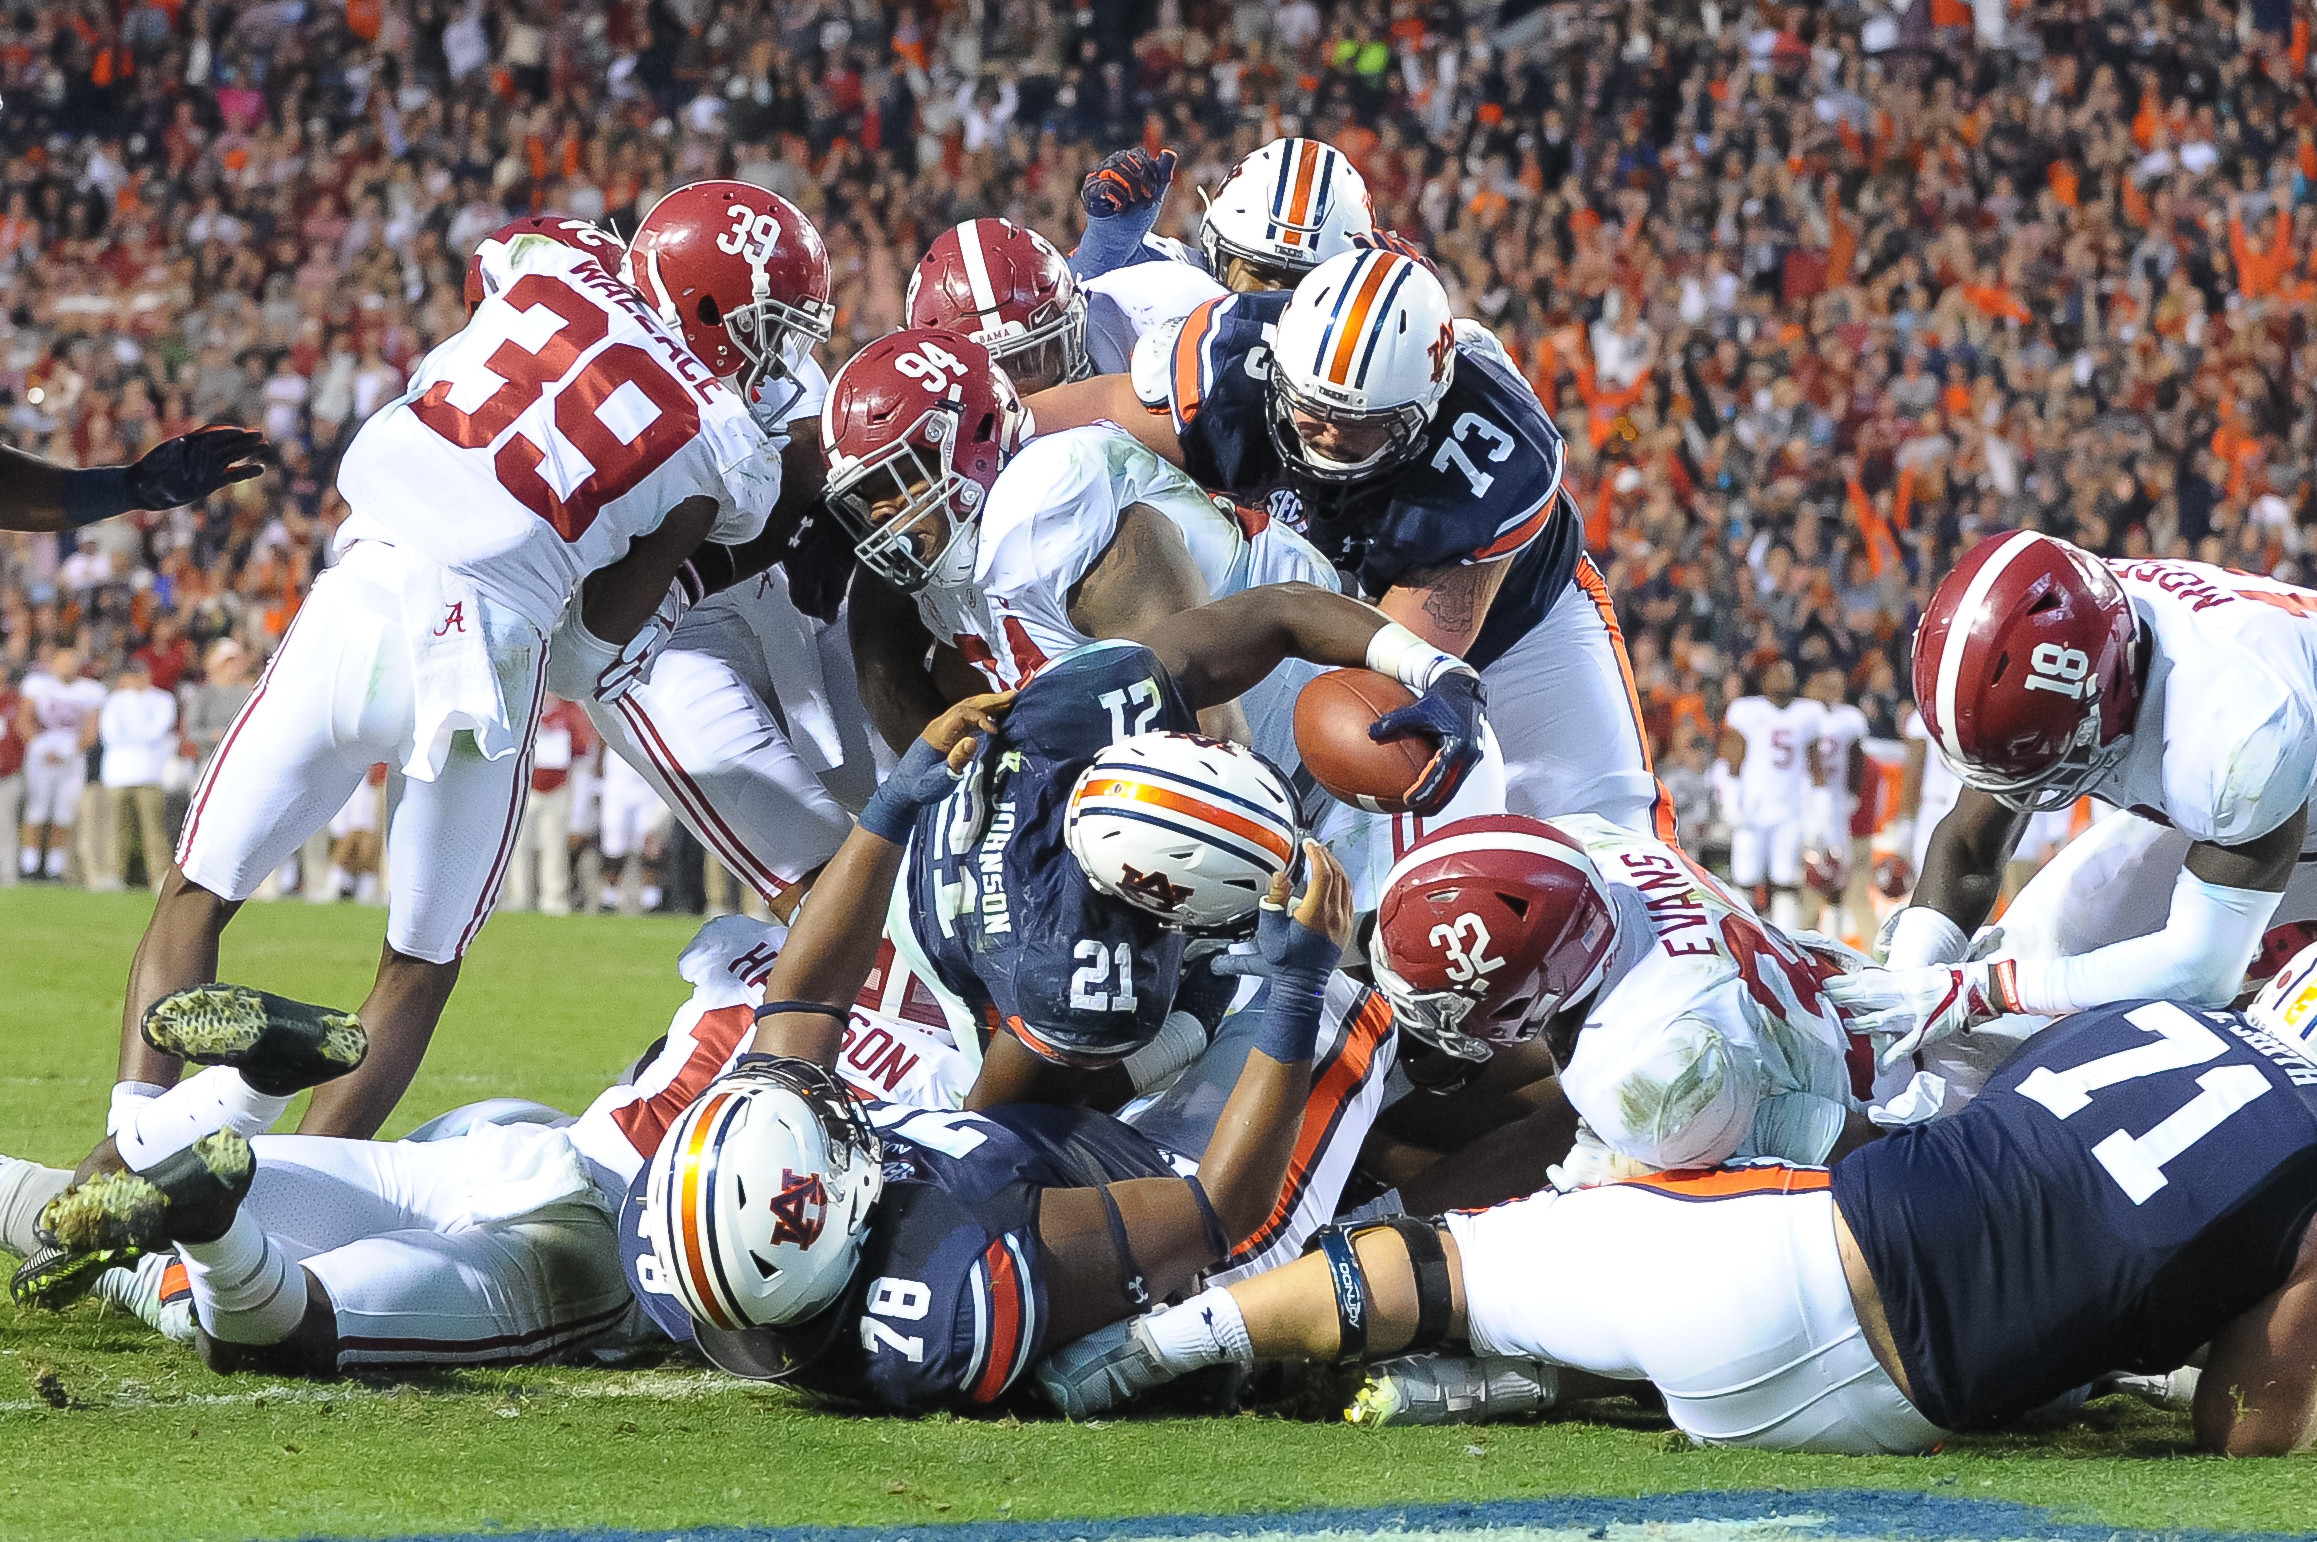 Auburn Tigers running back Kerryon Johnson (21) stretches for a touchdown during the second half of Auburn's 26-14 win over Alabama Saturday, at Jordan-Hare Stadium.